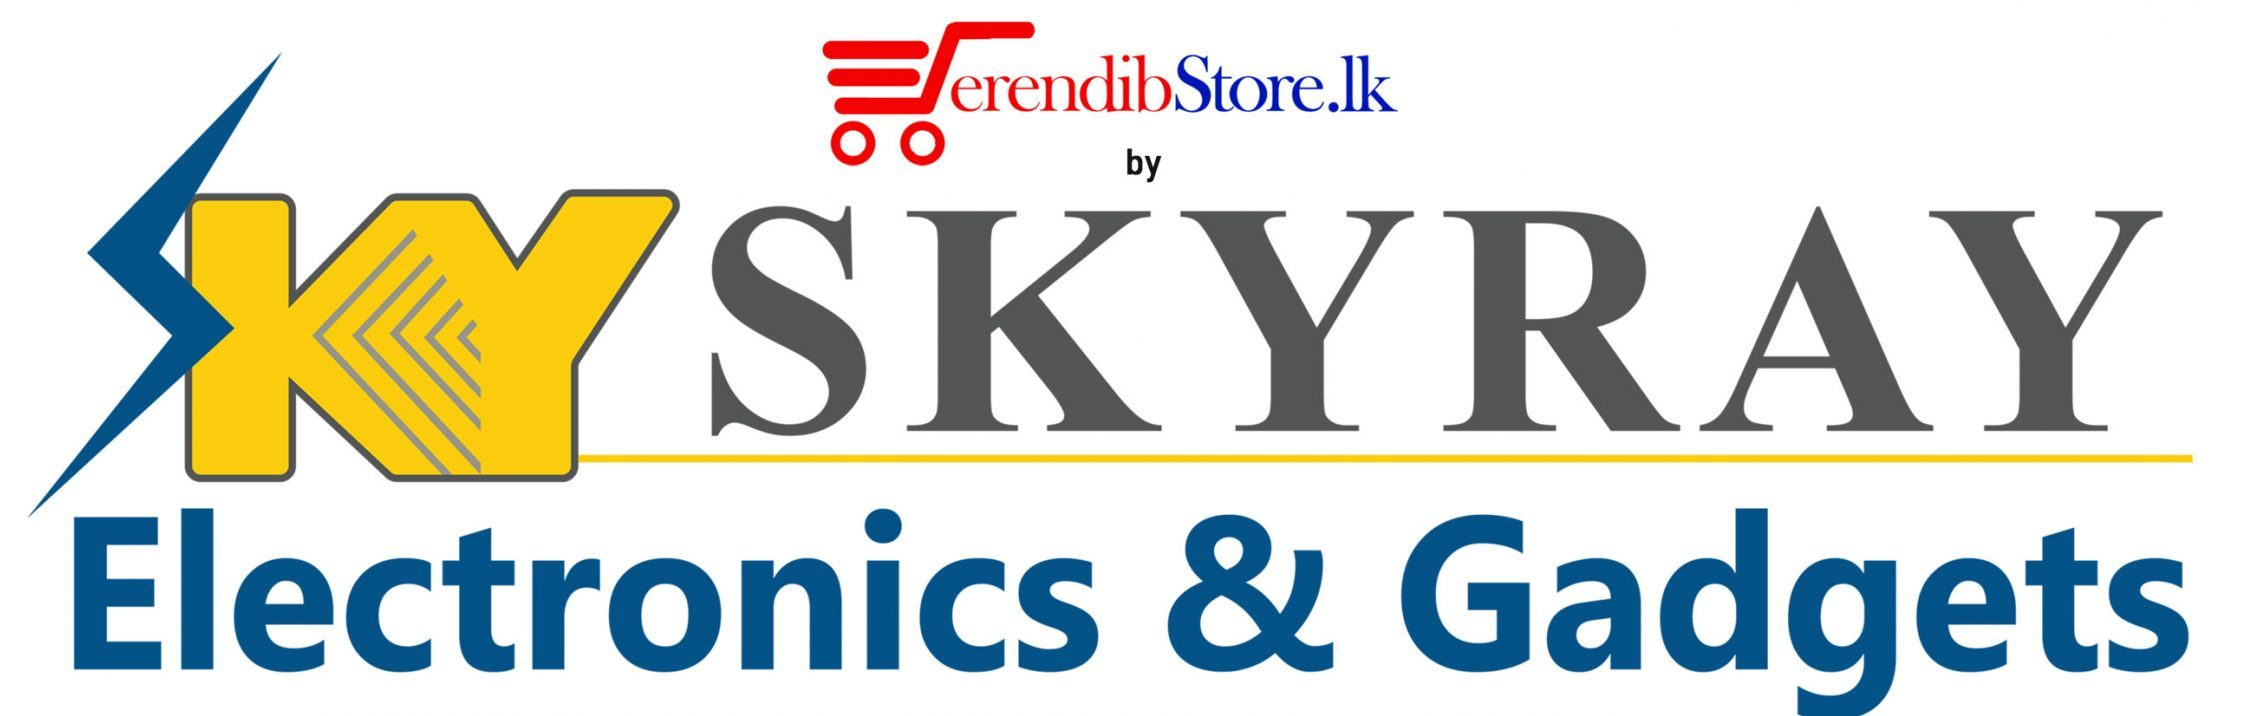 SerendibStore.lk -  Online Gadget Store In Sri Lanka - Mosquito Insect Killers | Electronic Gadgets | Voltage Converters Stabilizers | Multimeters | Wired Wireless Microphones and many more etc..